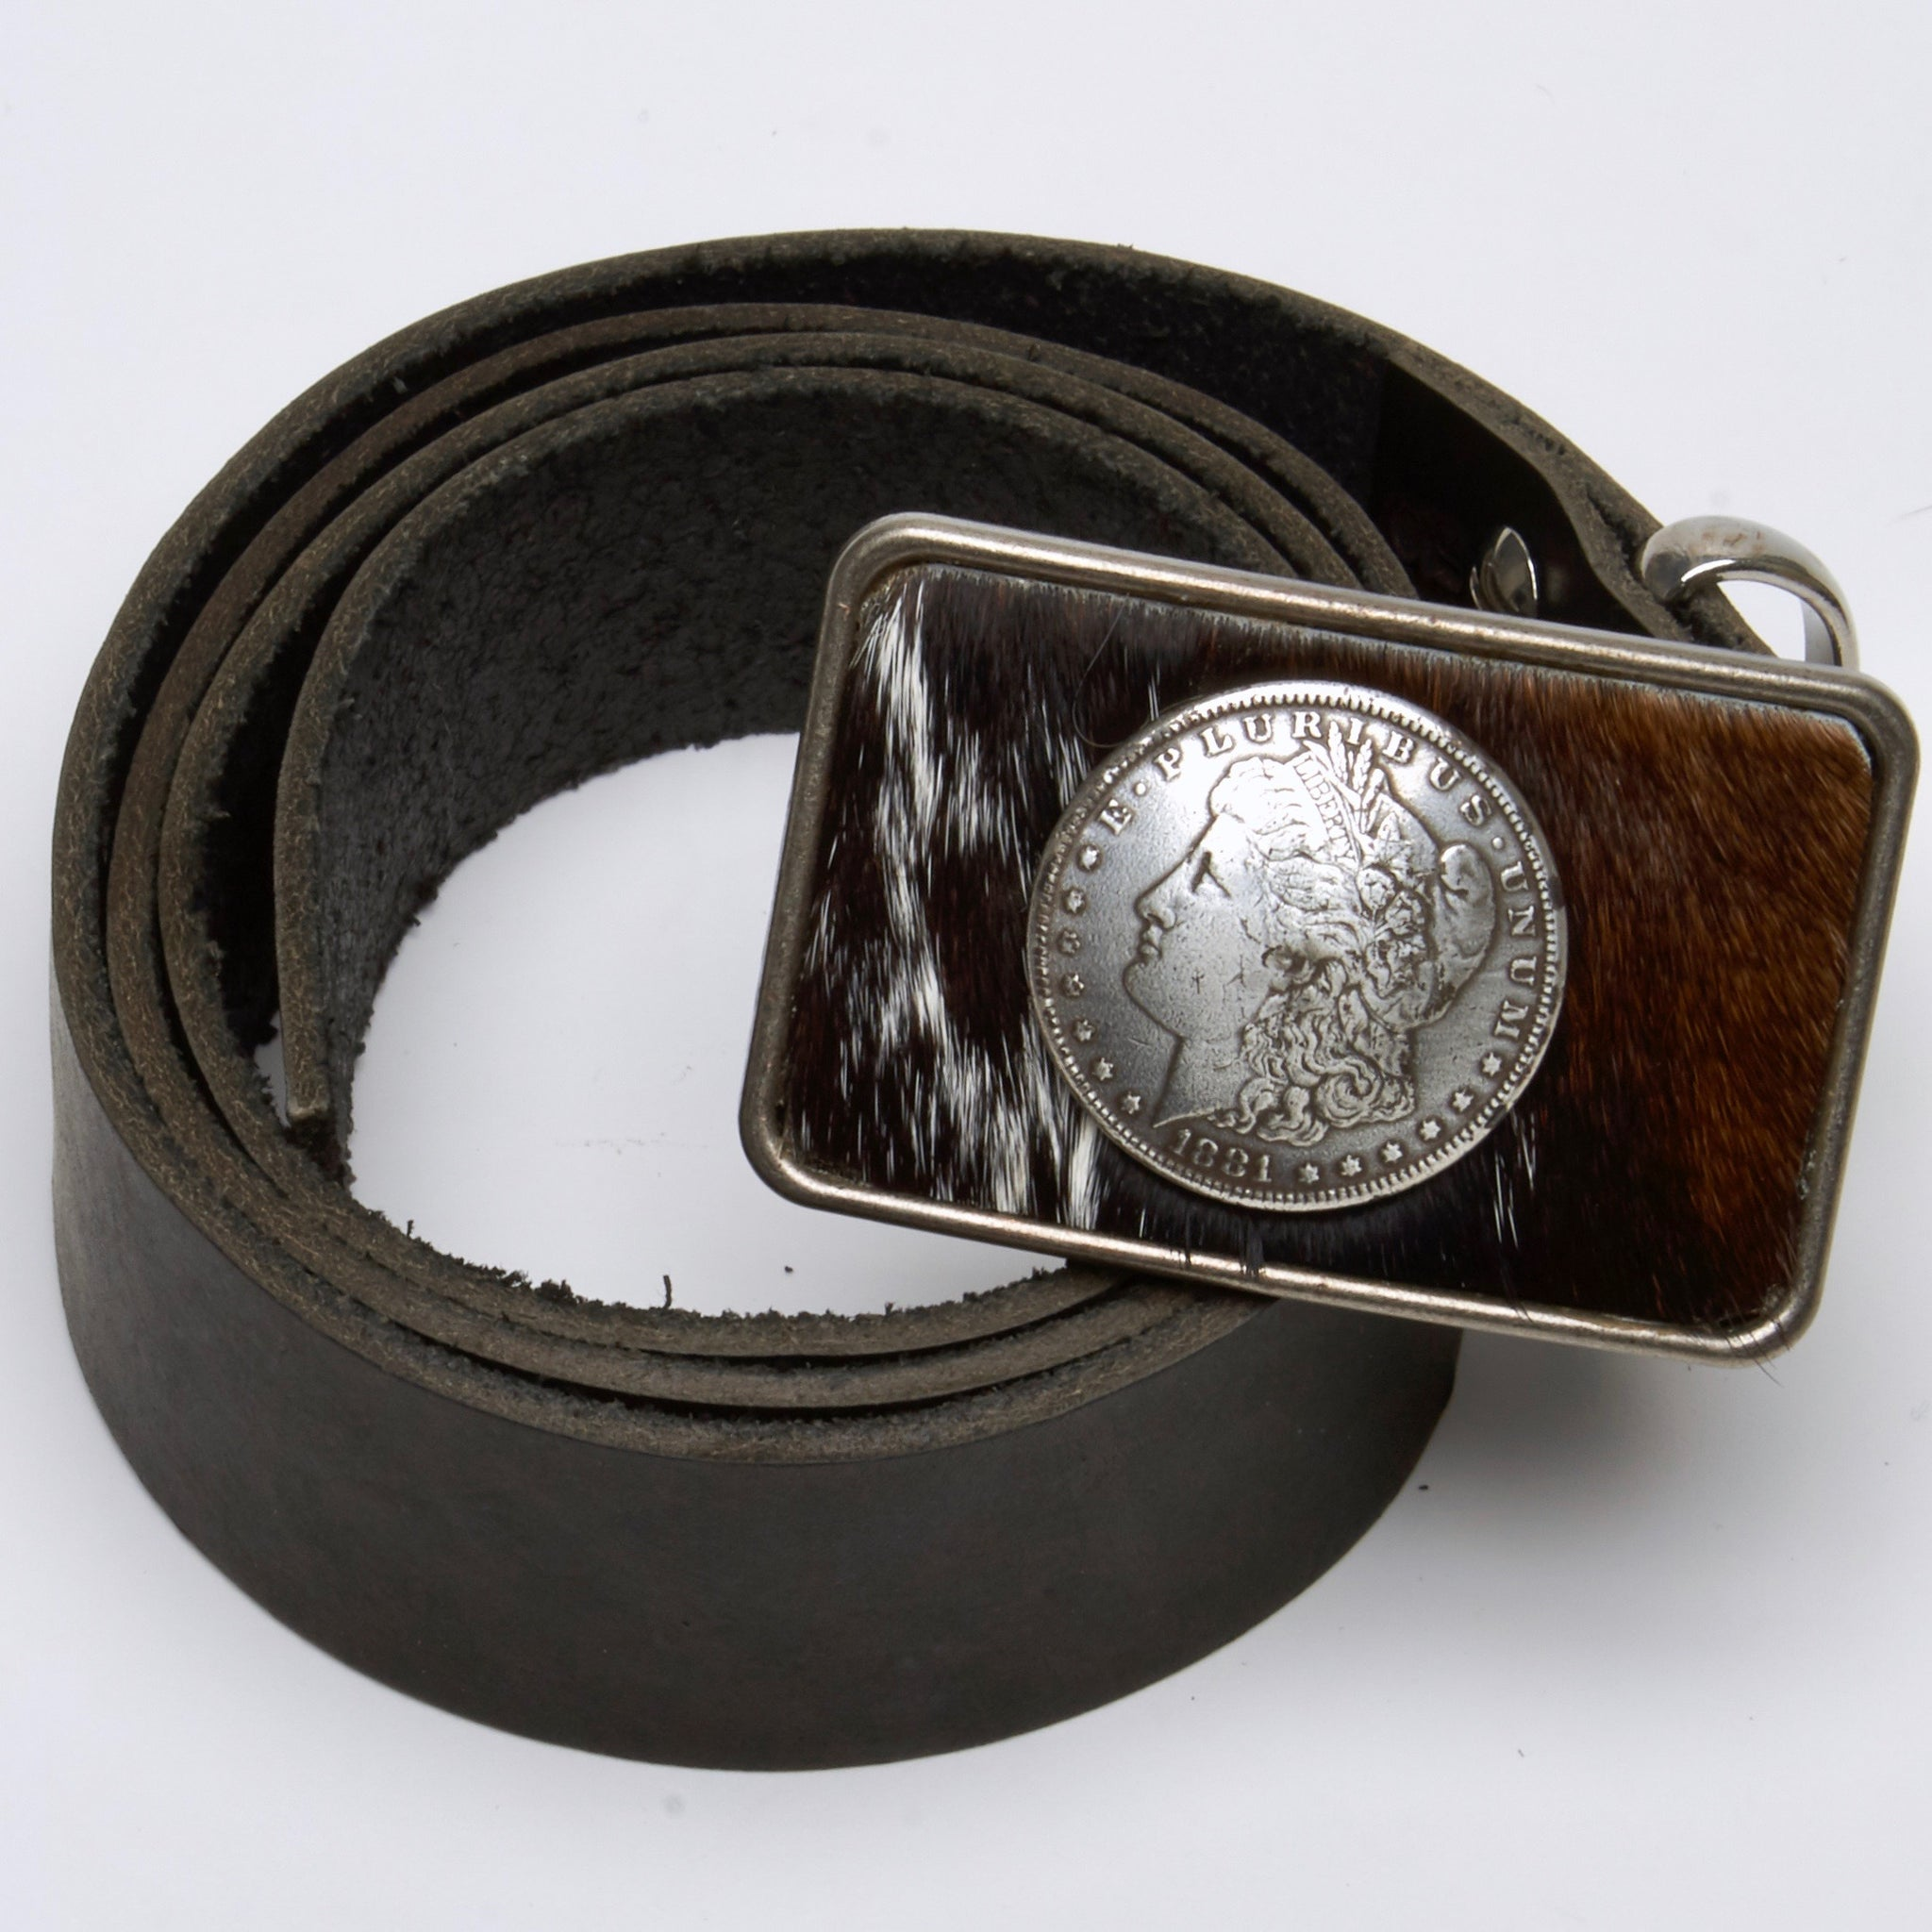 HAIR-ON COWHIDE BELT WITH SILVER DOLLAR CONCHO ON THE BUCKLE by NYET Jewelry.